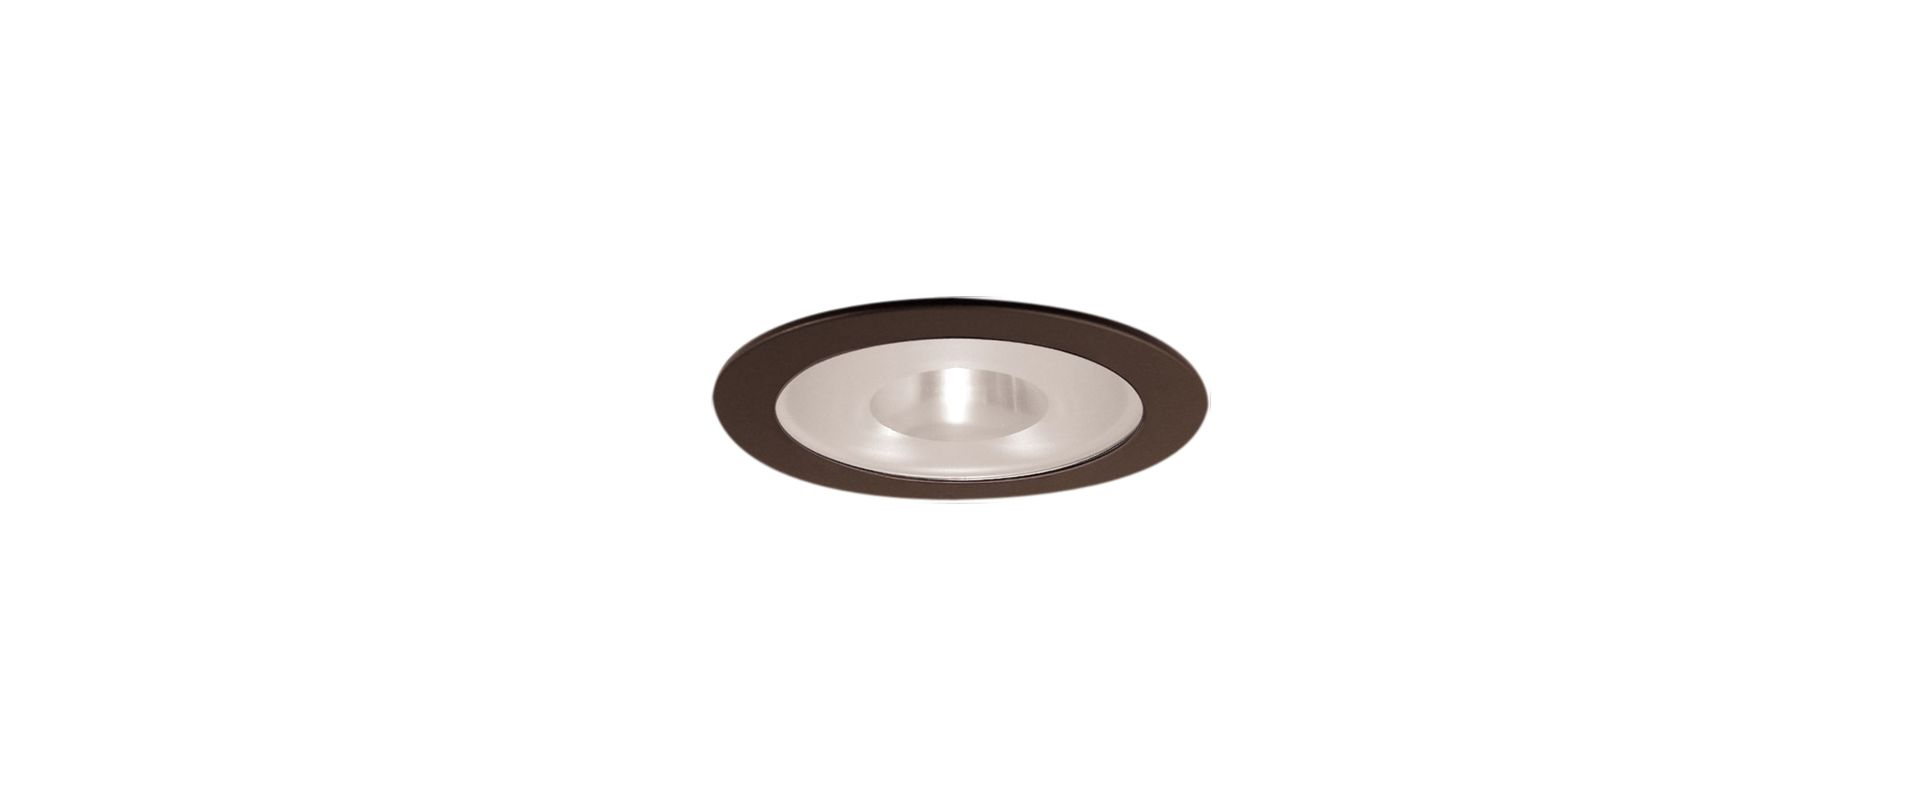 "Elco EL9115 4"" Shower Trim with Frosted Pinhole Glass and Reflector"